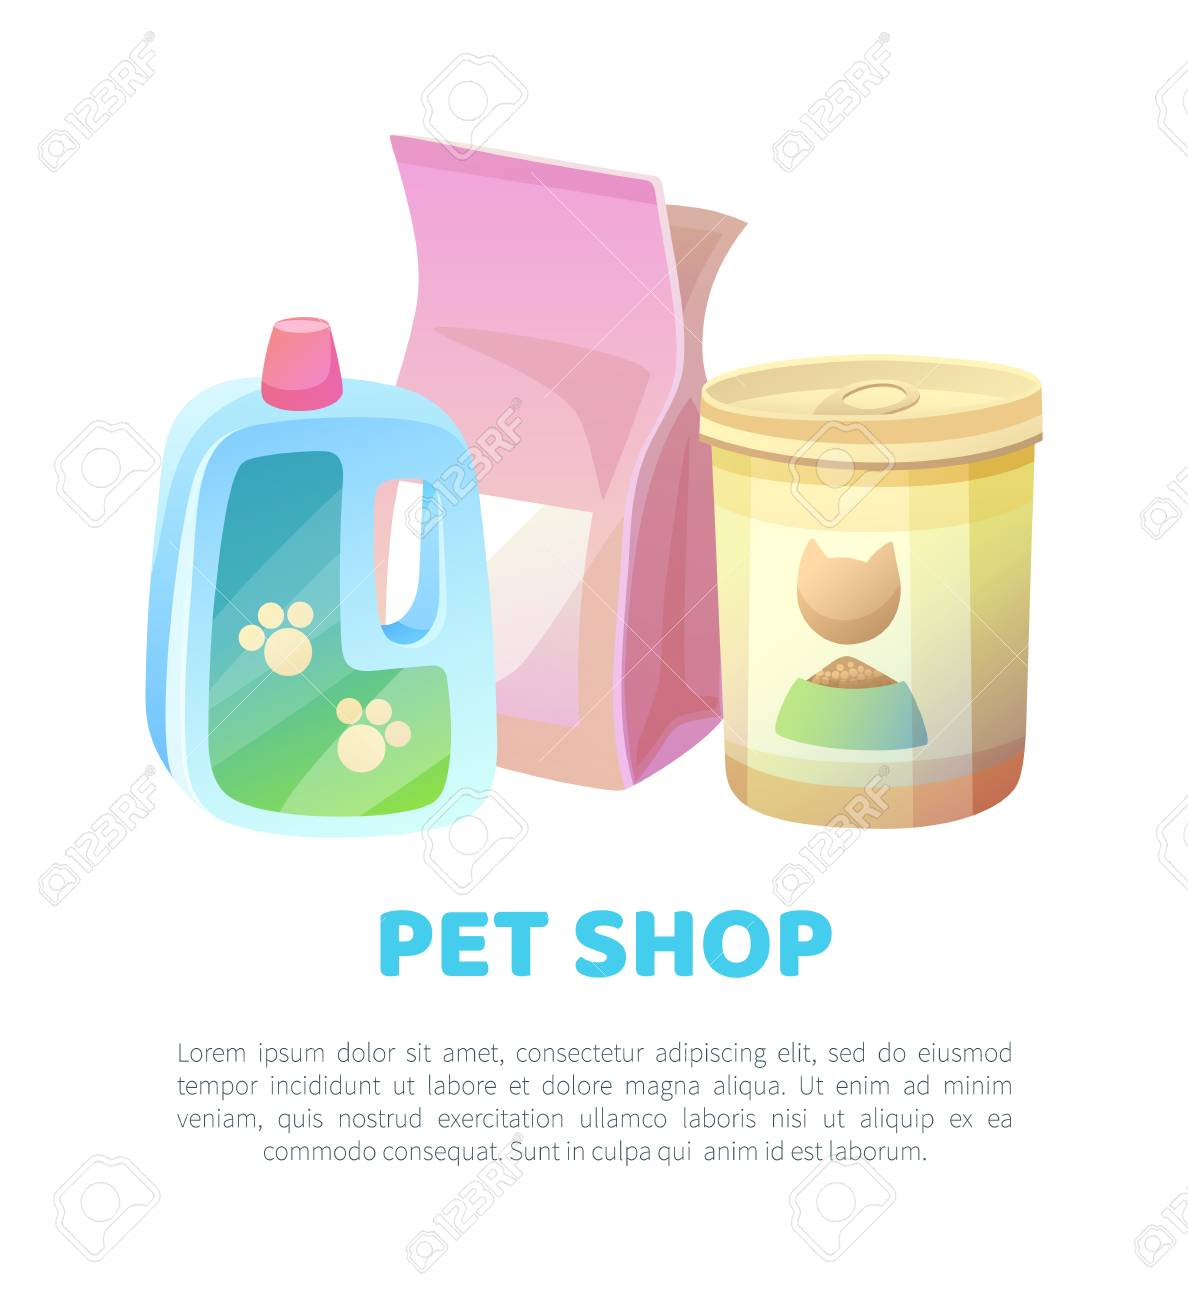 Pet shop banner food and cat filler for toilet, shampoo cleaning moisturizer, products at domestic animals store, text sample and headlines, vector - 111592791